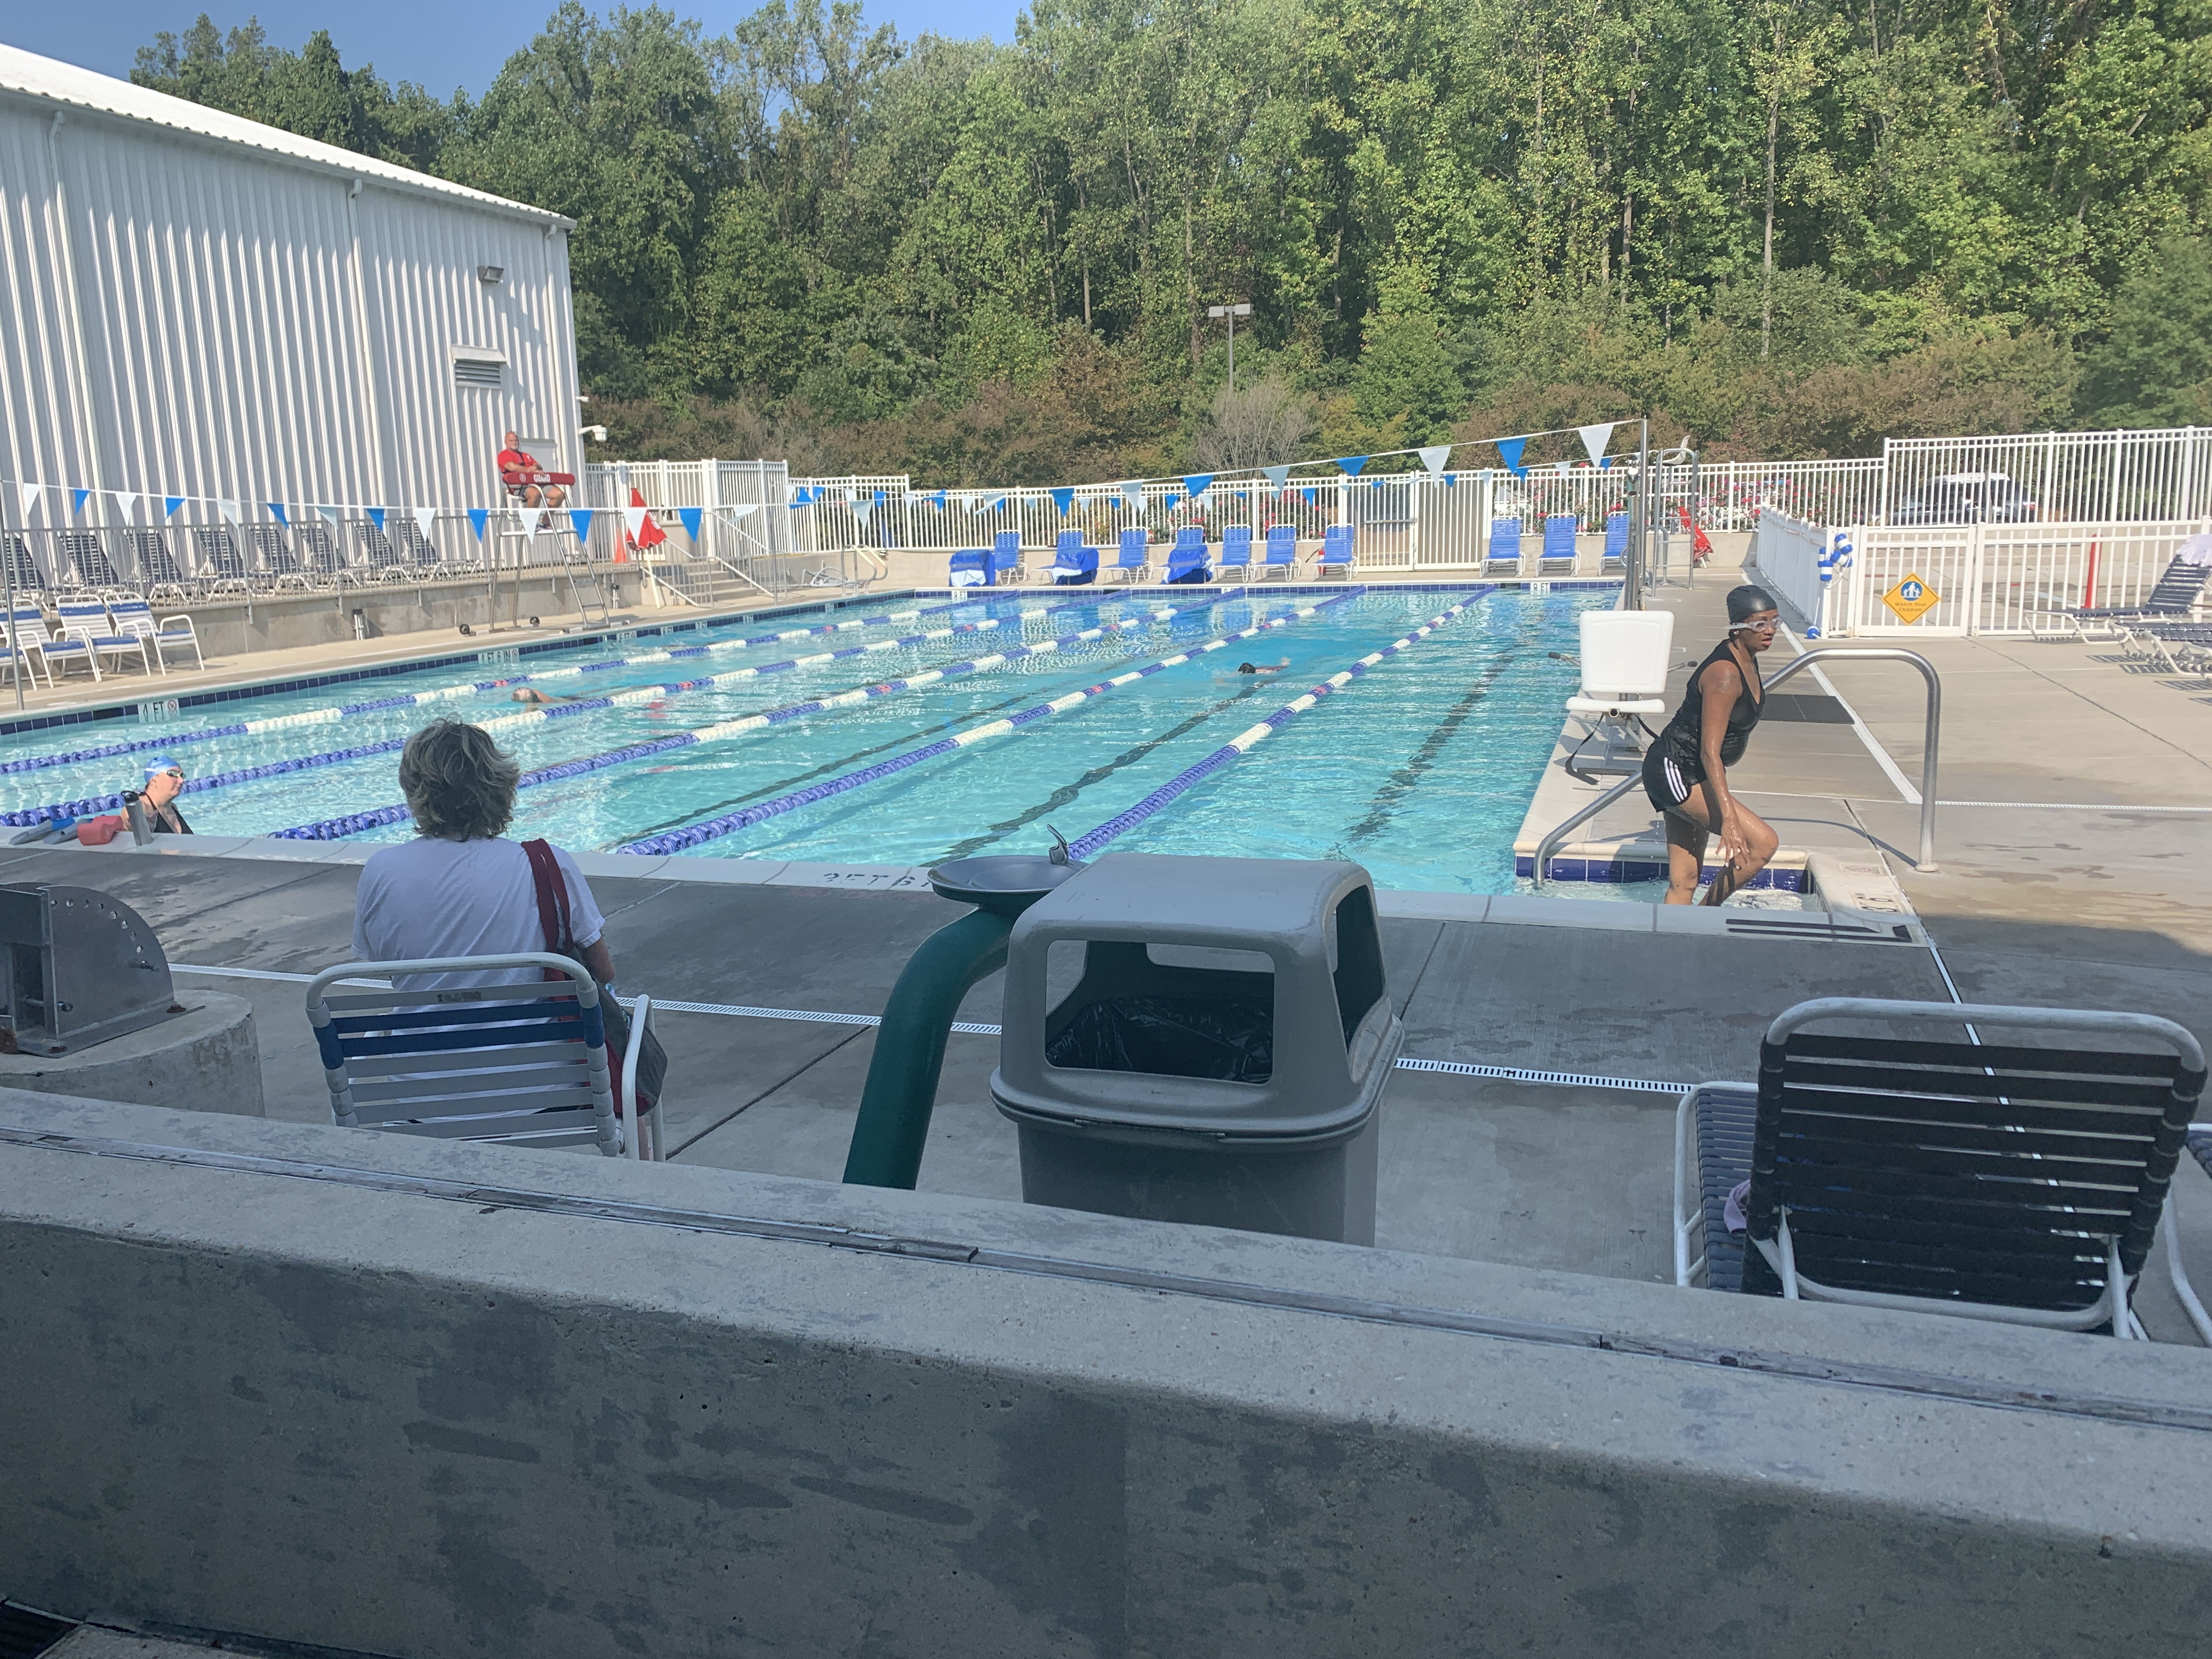 A pool still open in October in Arnold, Maryland.